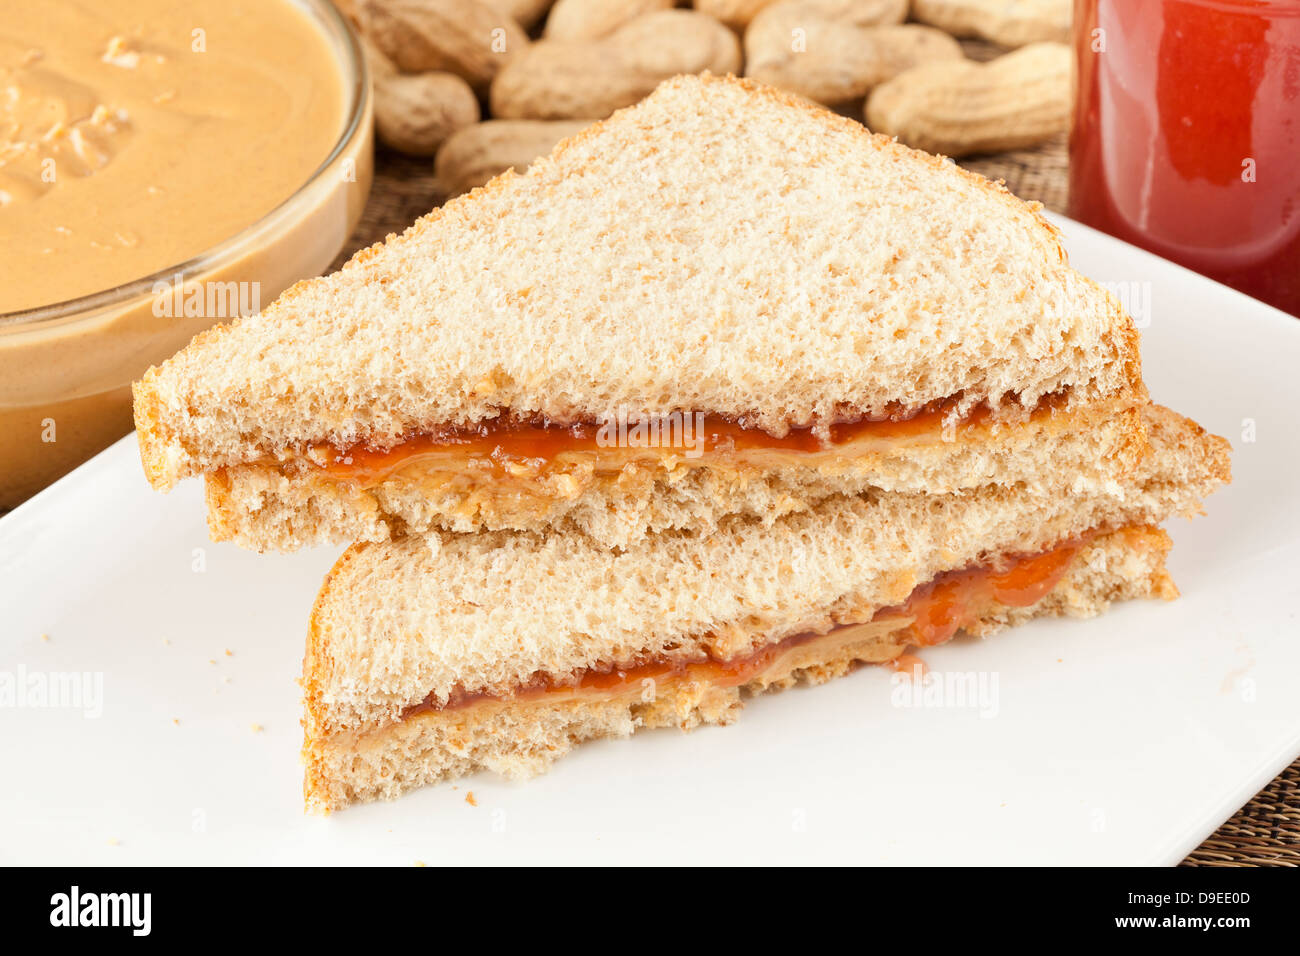 Fresh Homemade Peanut Butter and Jelly Sandwich - Stock Image